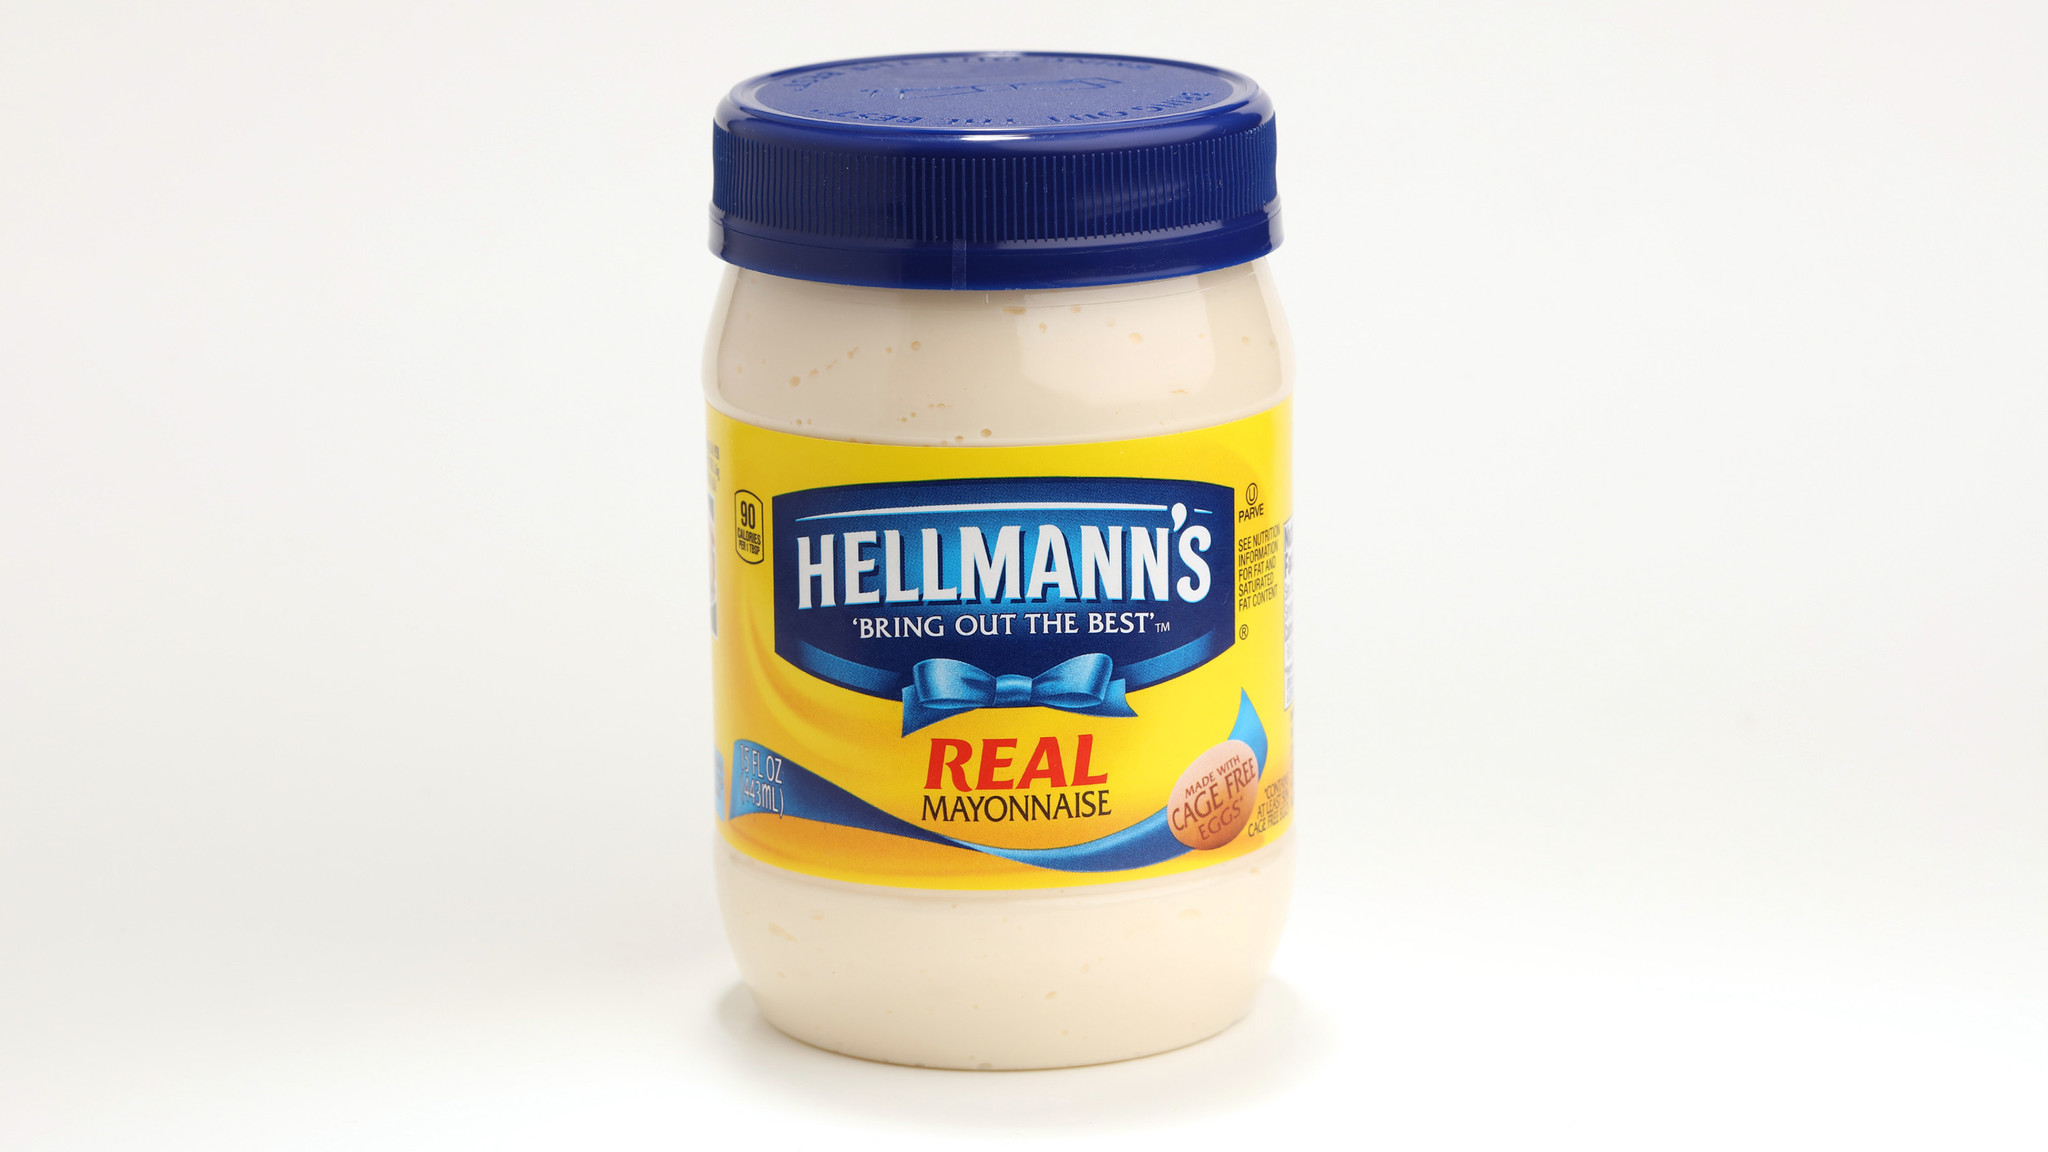 The maker of Hellmann's mayonaise begged to differ with Hampton Creek's